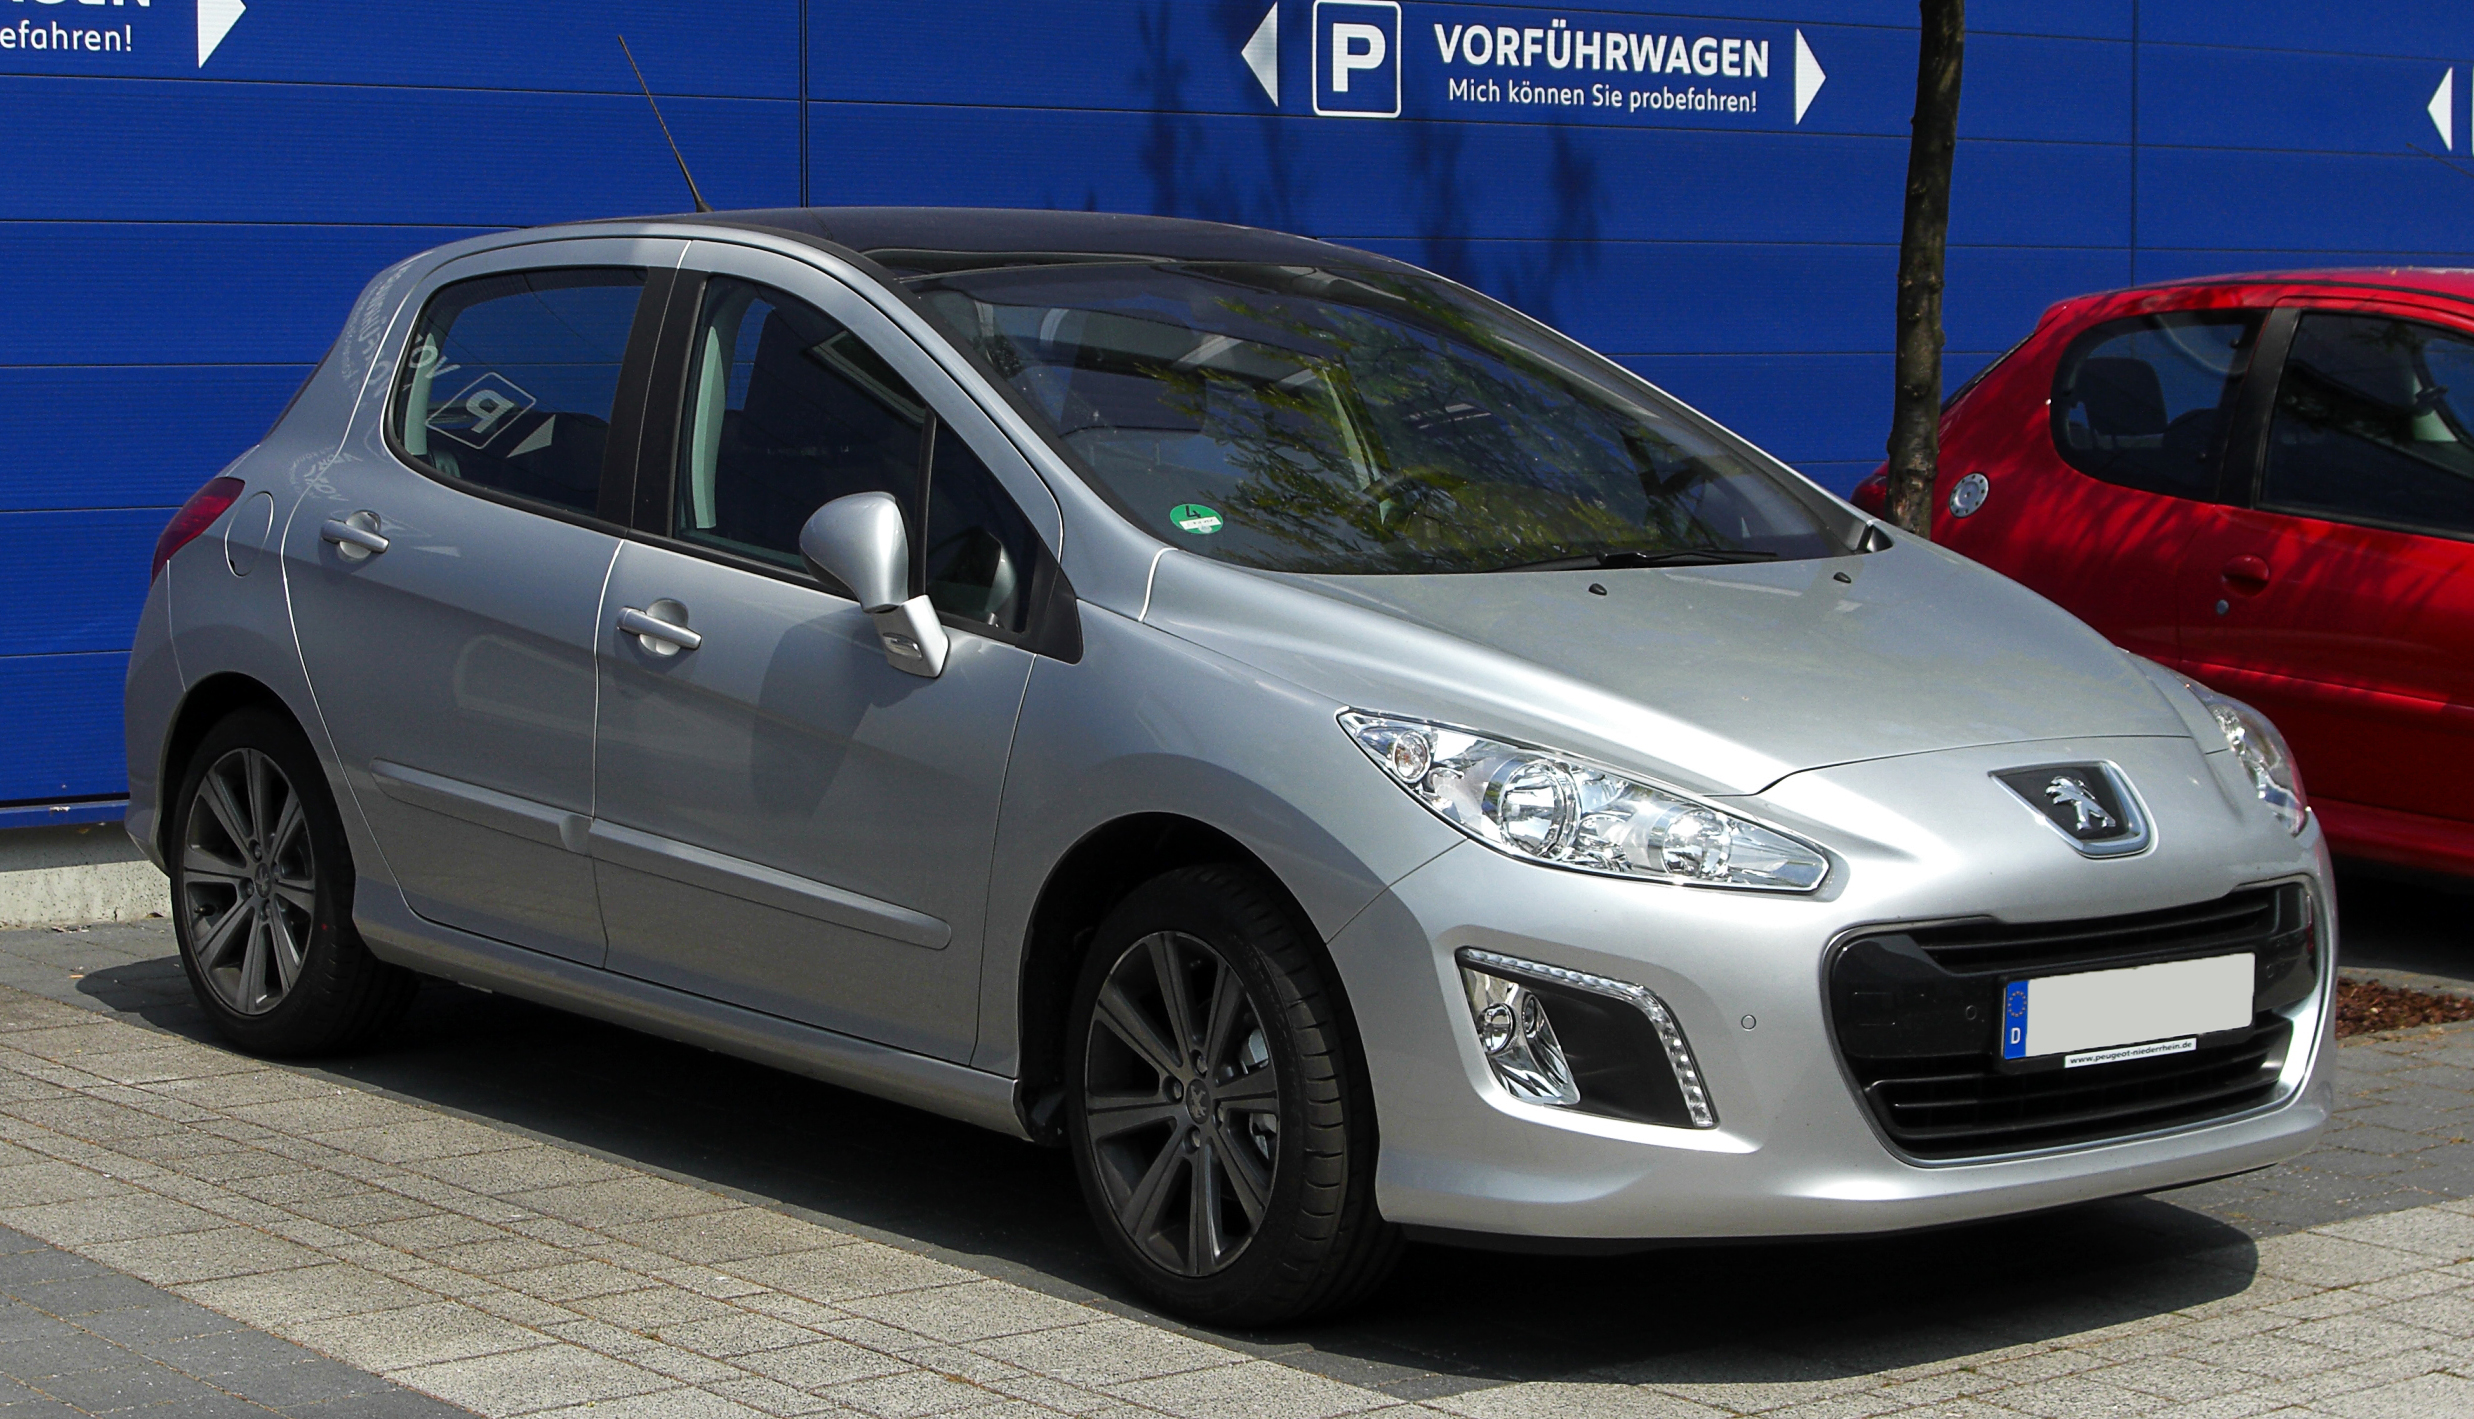 2008 peugeot 308 pictures information and specs auto. Black Bedroom Furniture Sets. Home Design Ideas